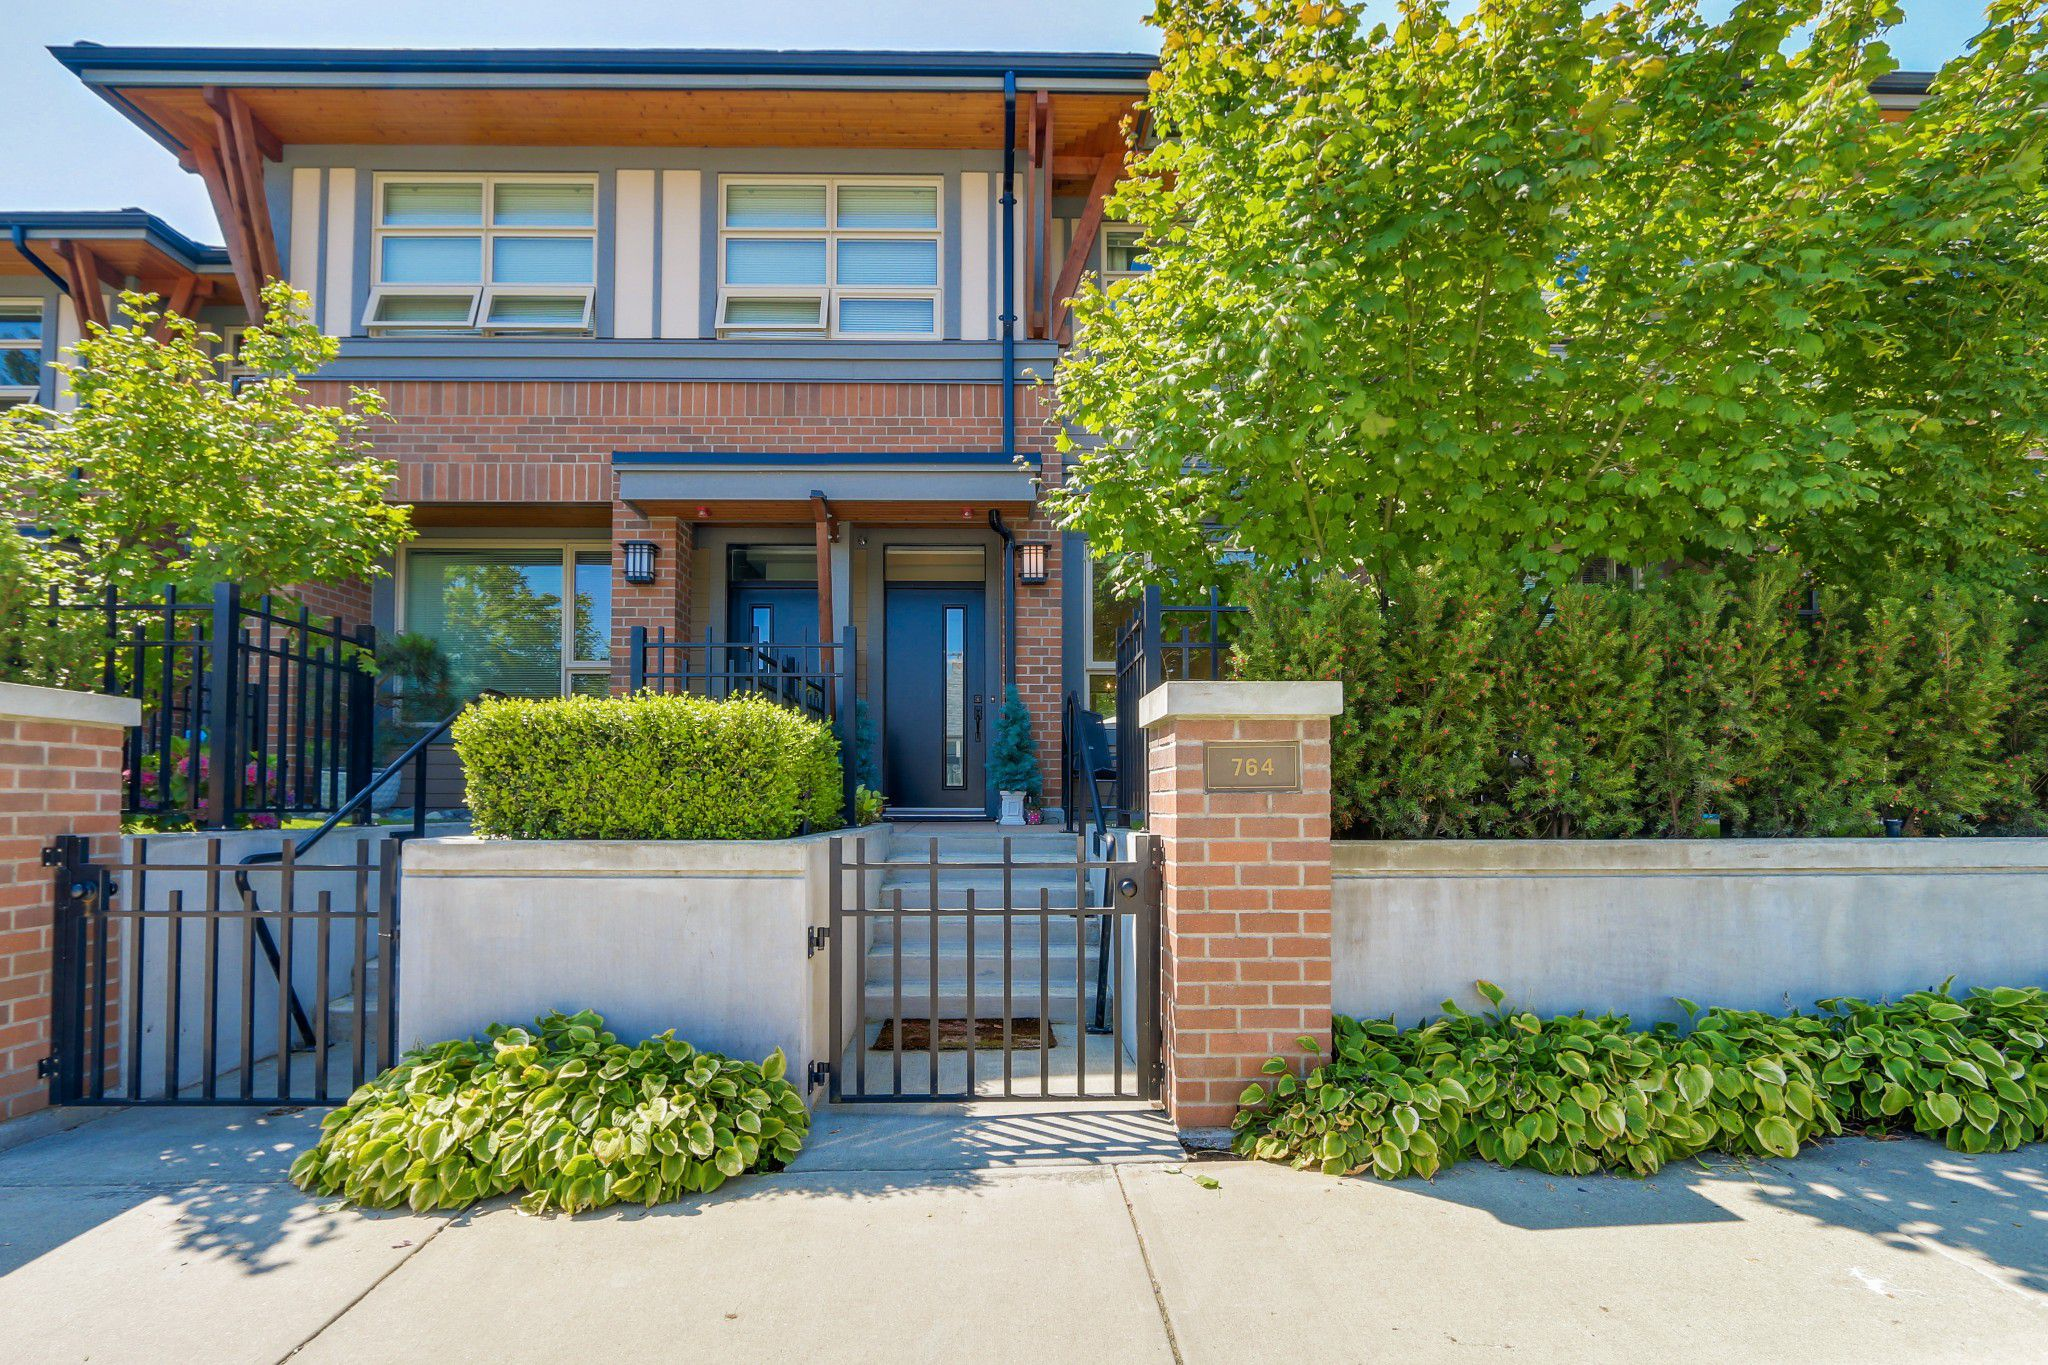 """Main Photo: 764 E 29TH Avenue in Vancouver: Fraser VE Townhouse for sale in """"CENTURY- THE SIGNATURE COLLECTION"""" (Vancouver East)  : MLS®# R2243463"""